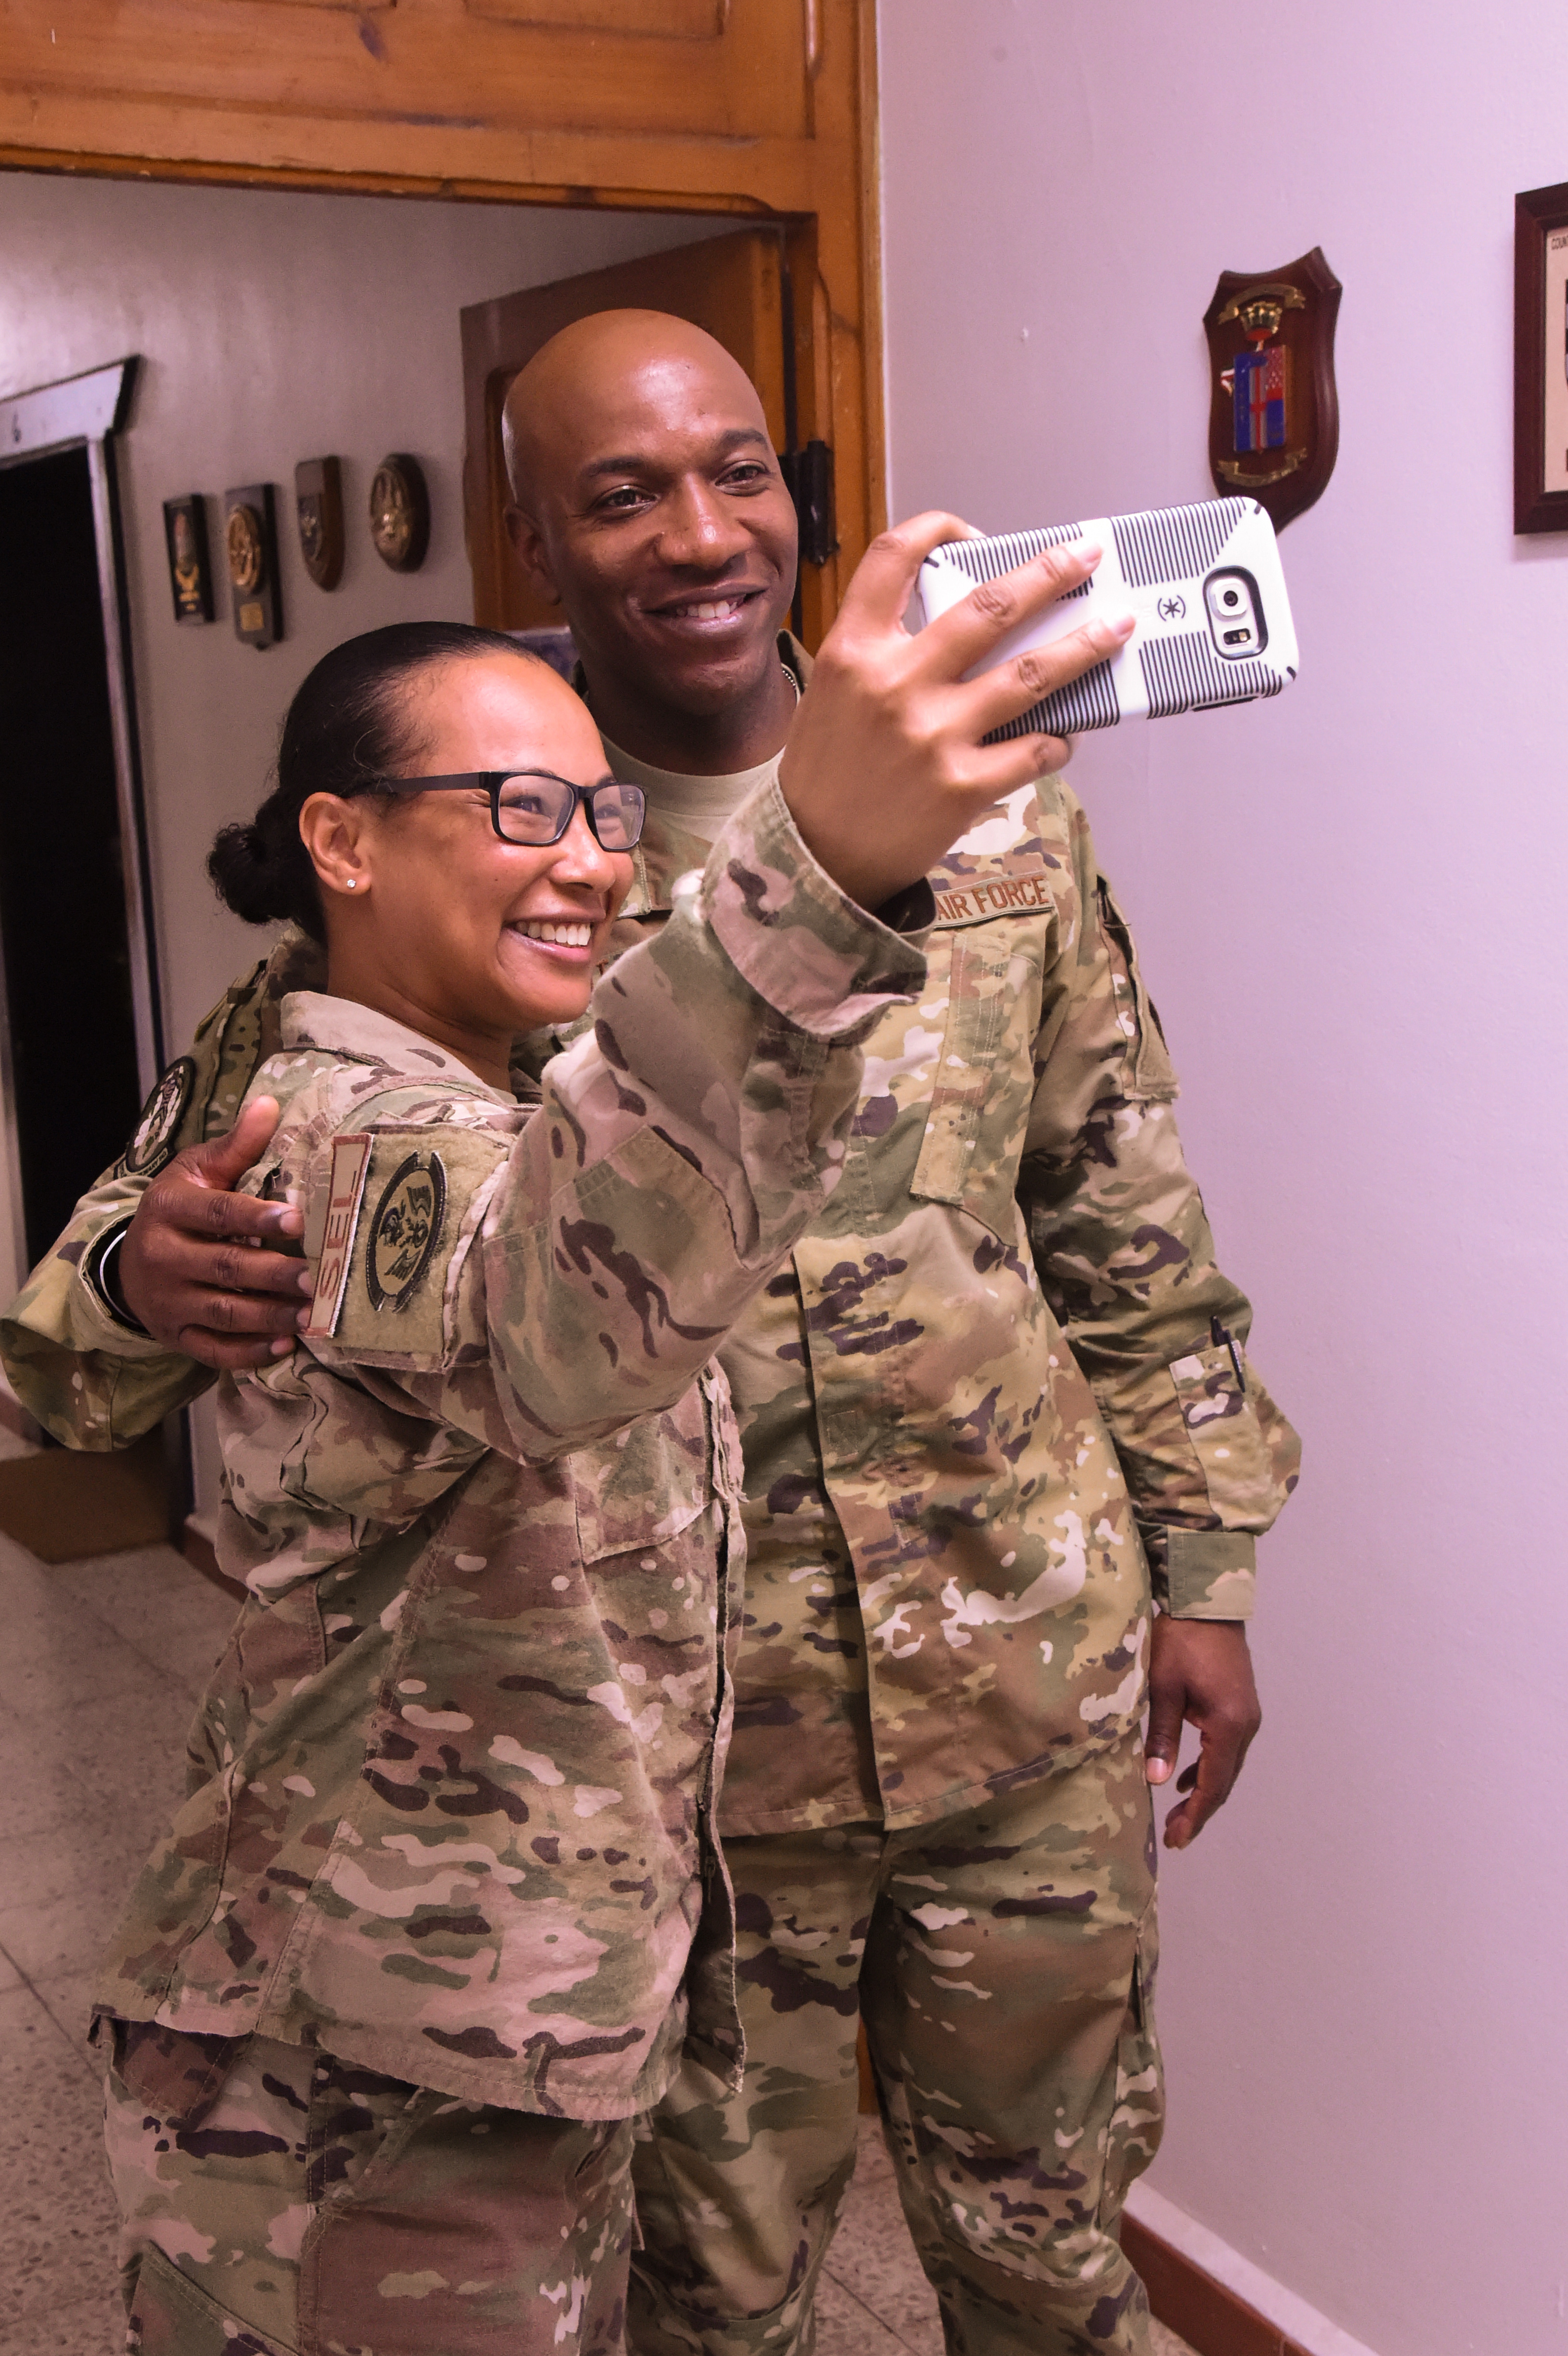 U.S. Air Force Chief Master Sgt. of the Air Force Kaleth Wright poses for a selfie photo with U.S. Air Force Master Sgt. Maricel Cofield, senior enlisted leader for the 726th Expeditionary Air Base Squadron, during his visit to Camp Lemonnier, Djibouti, April 11, 2017. The U.S. Air Force Vice Chief of Staff Gen. Stephen Wilson visited Combined Joint Task Force-Horn of Africa and tenant commands with Wright to gain a better understanding of Air Force integration and missions in the U.S. Africa Command area of responsibility. (U.S. Air National Guard photo by Staff Sgt. Penny Snoozy)